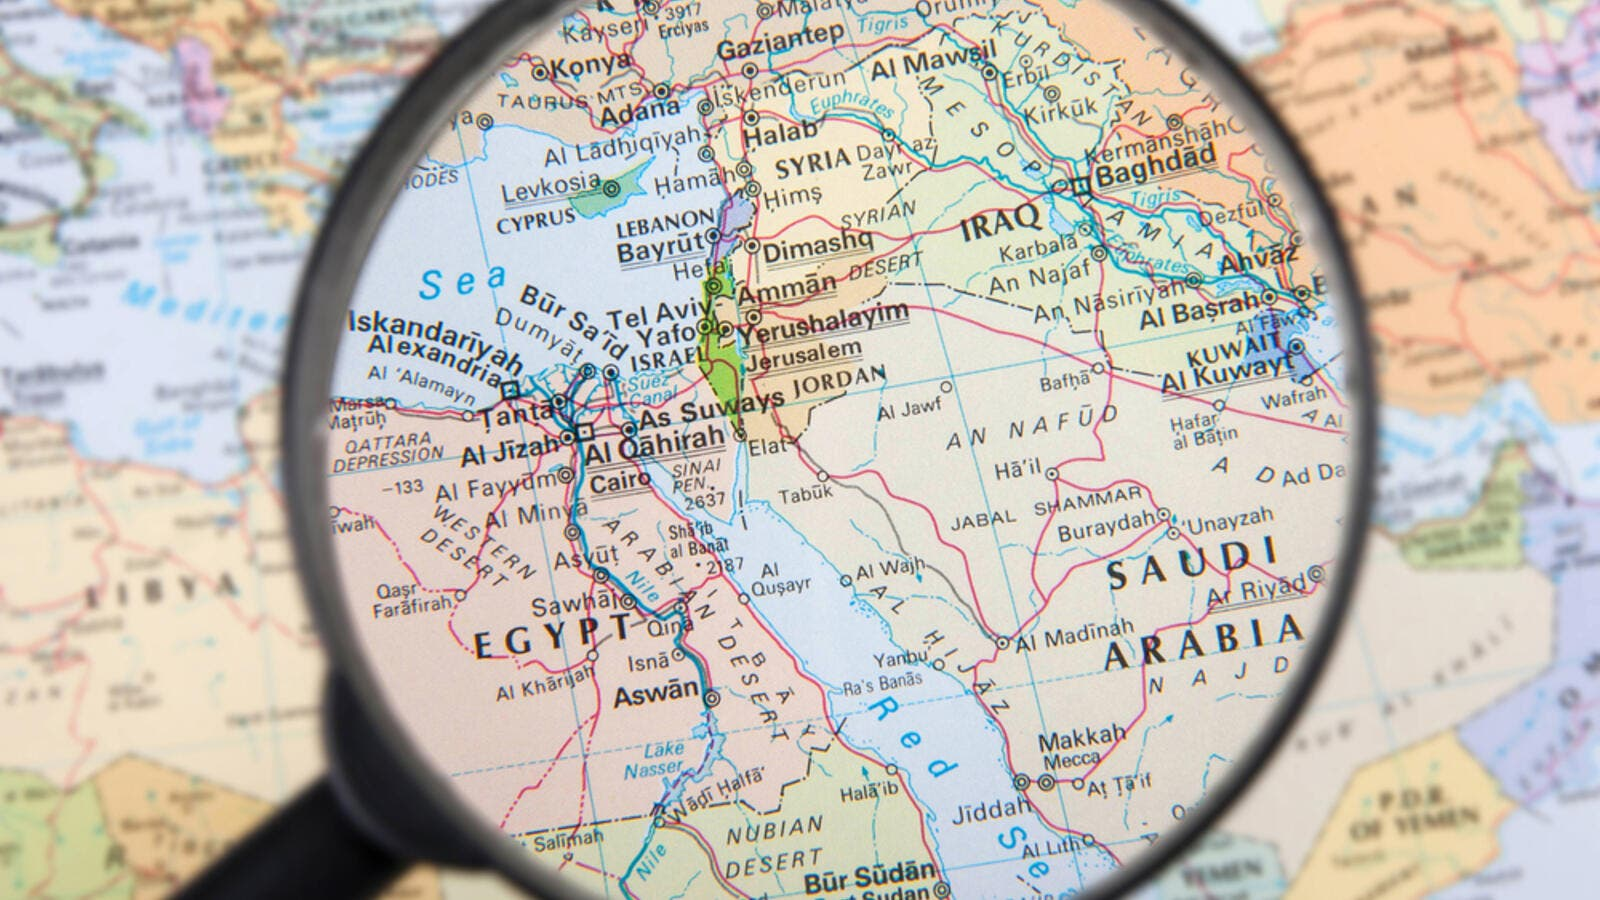 The Modern Middle East: A Reader